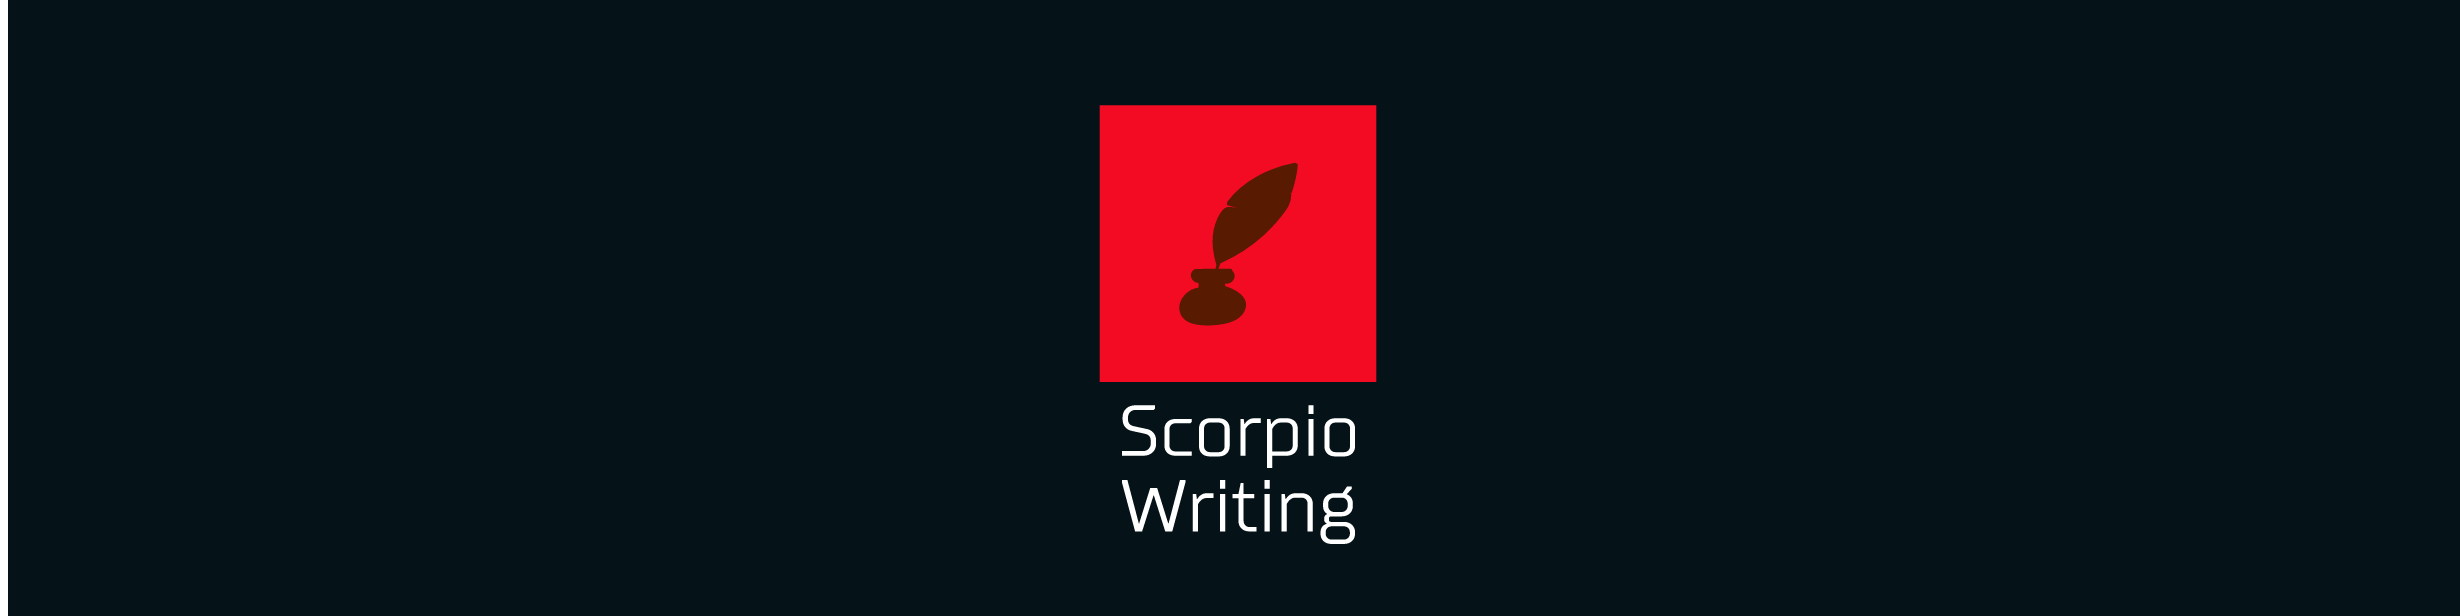 Scorpio Writing, LLC